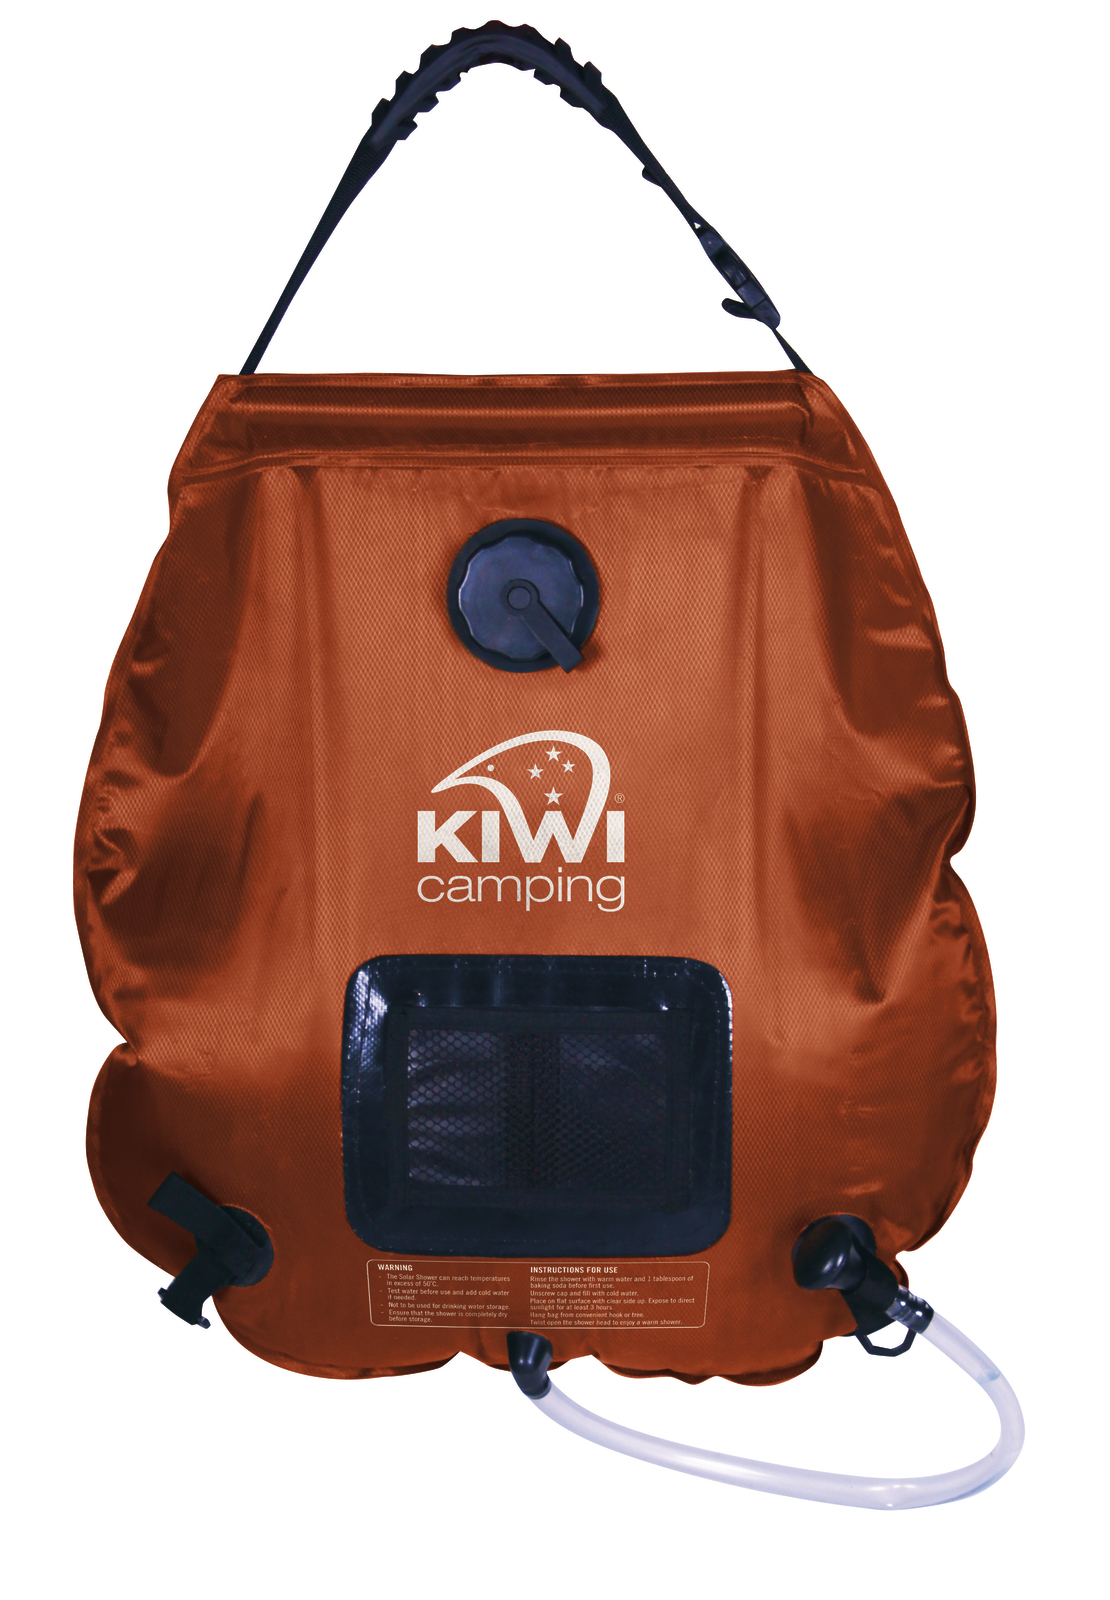 Kiwi Camping Deluxe Solar Shower - 20 Litres image